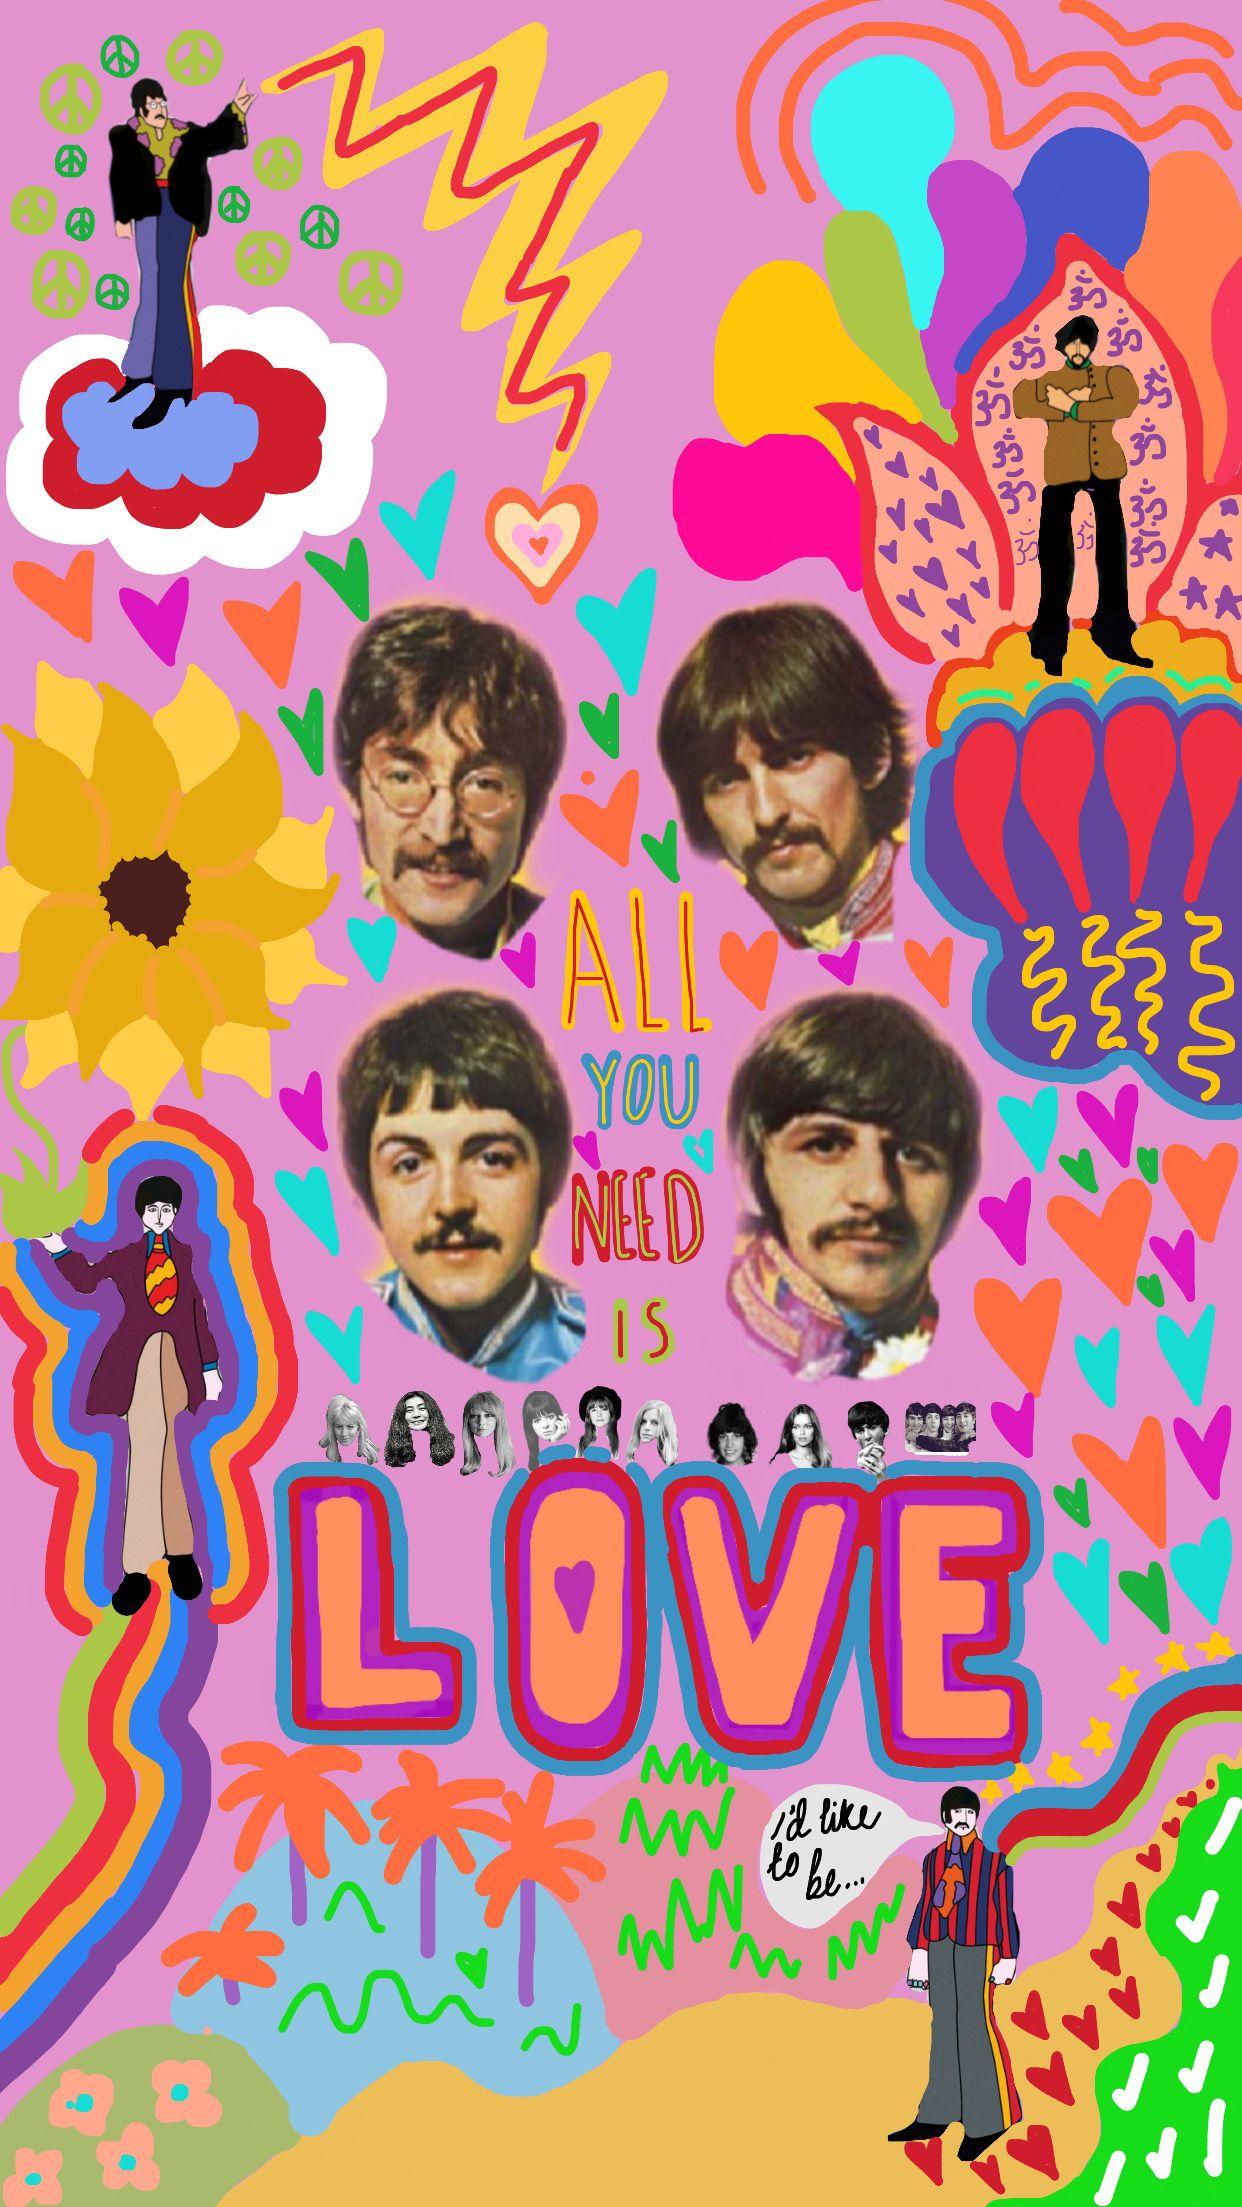 Pin on ♡the beatles♡ (mostly paul McCartney tho)